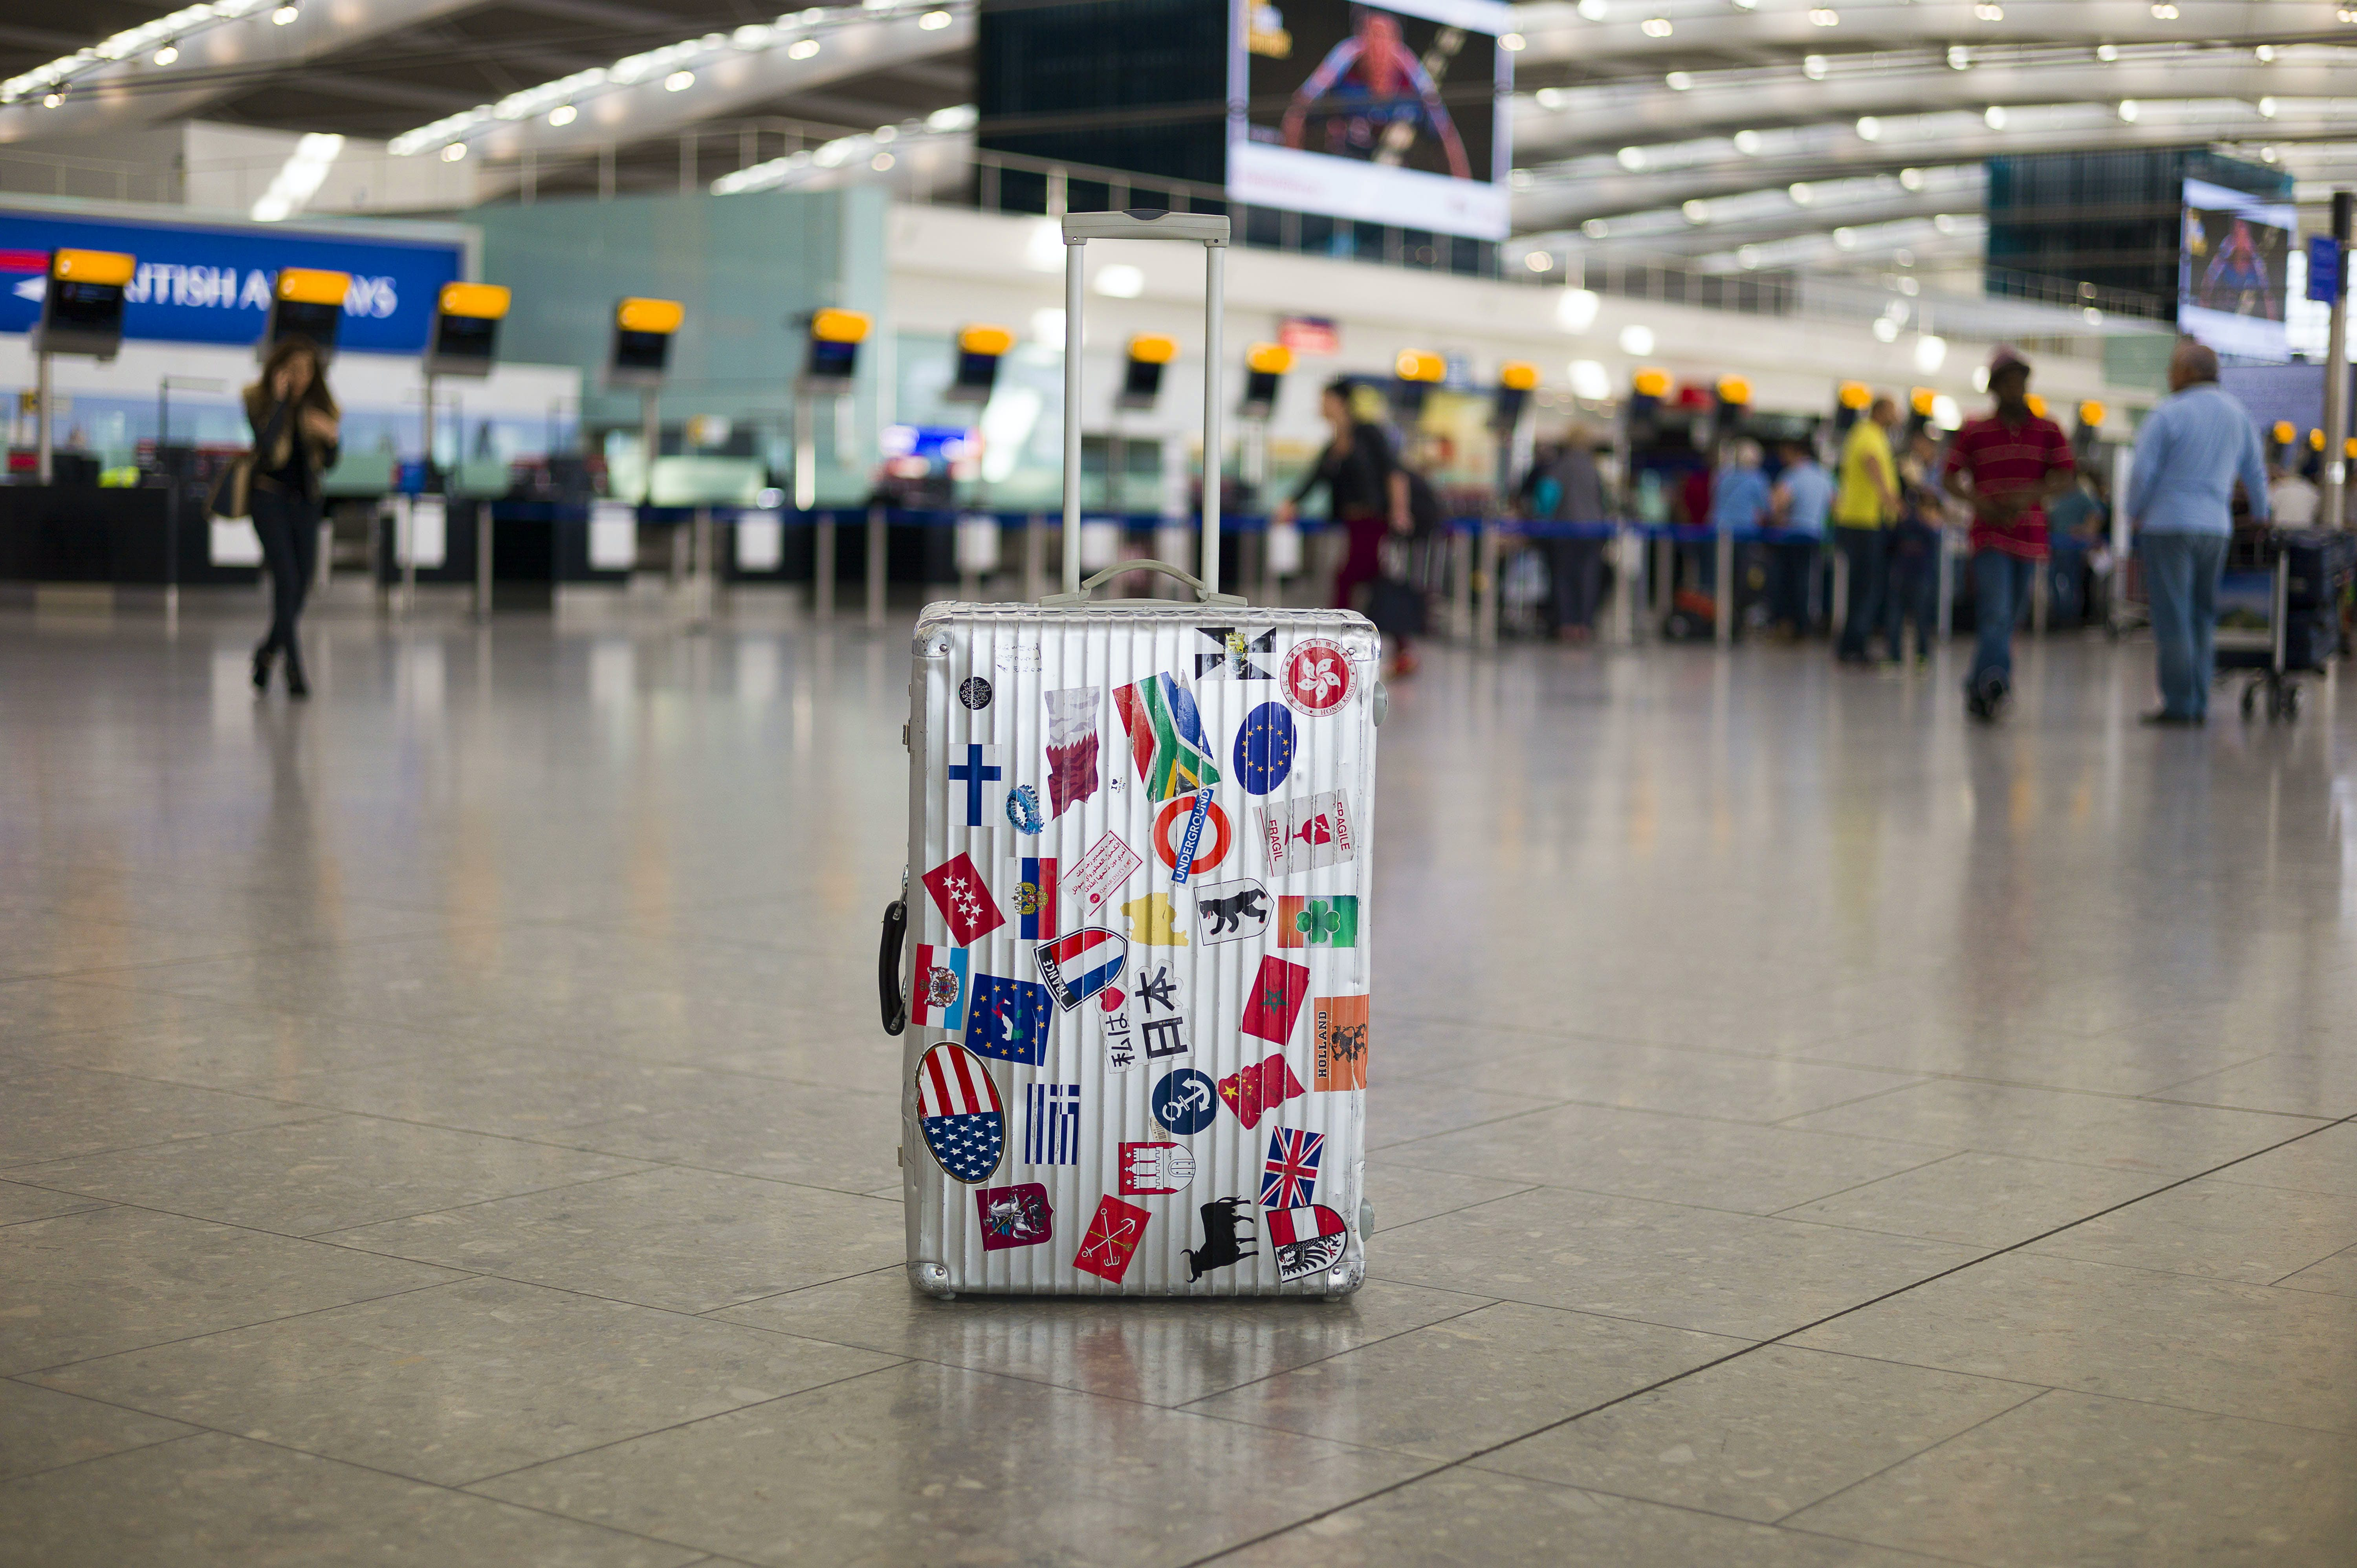 Unattended suitcase in departure zone at airport